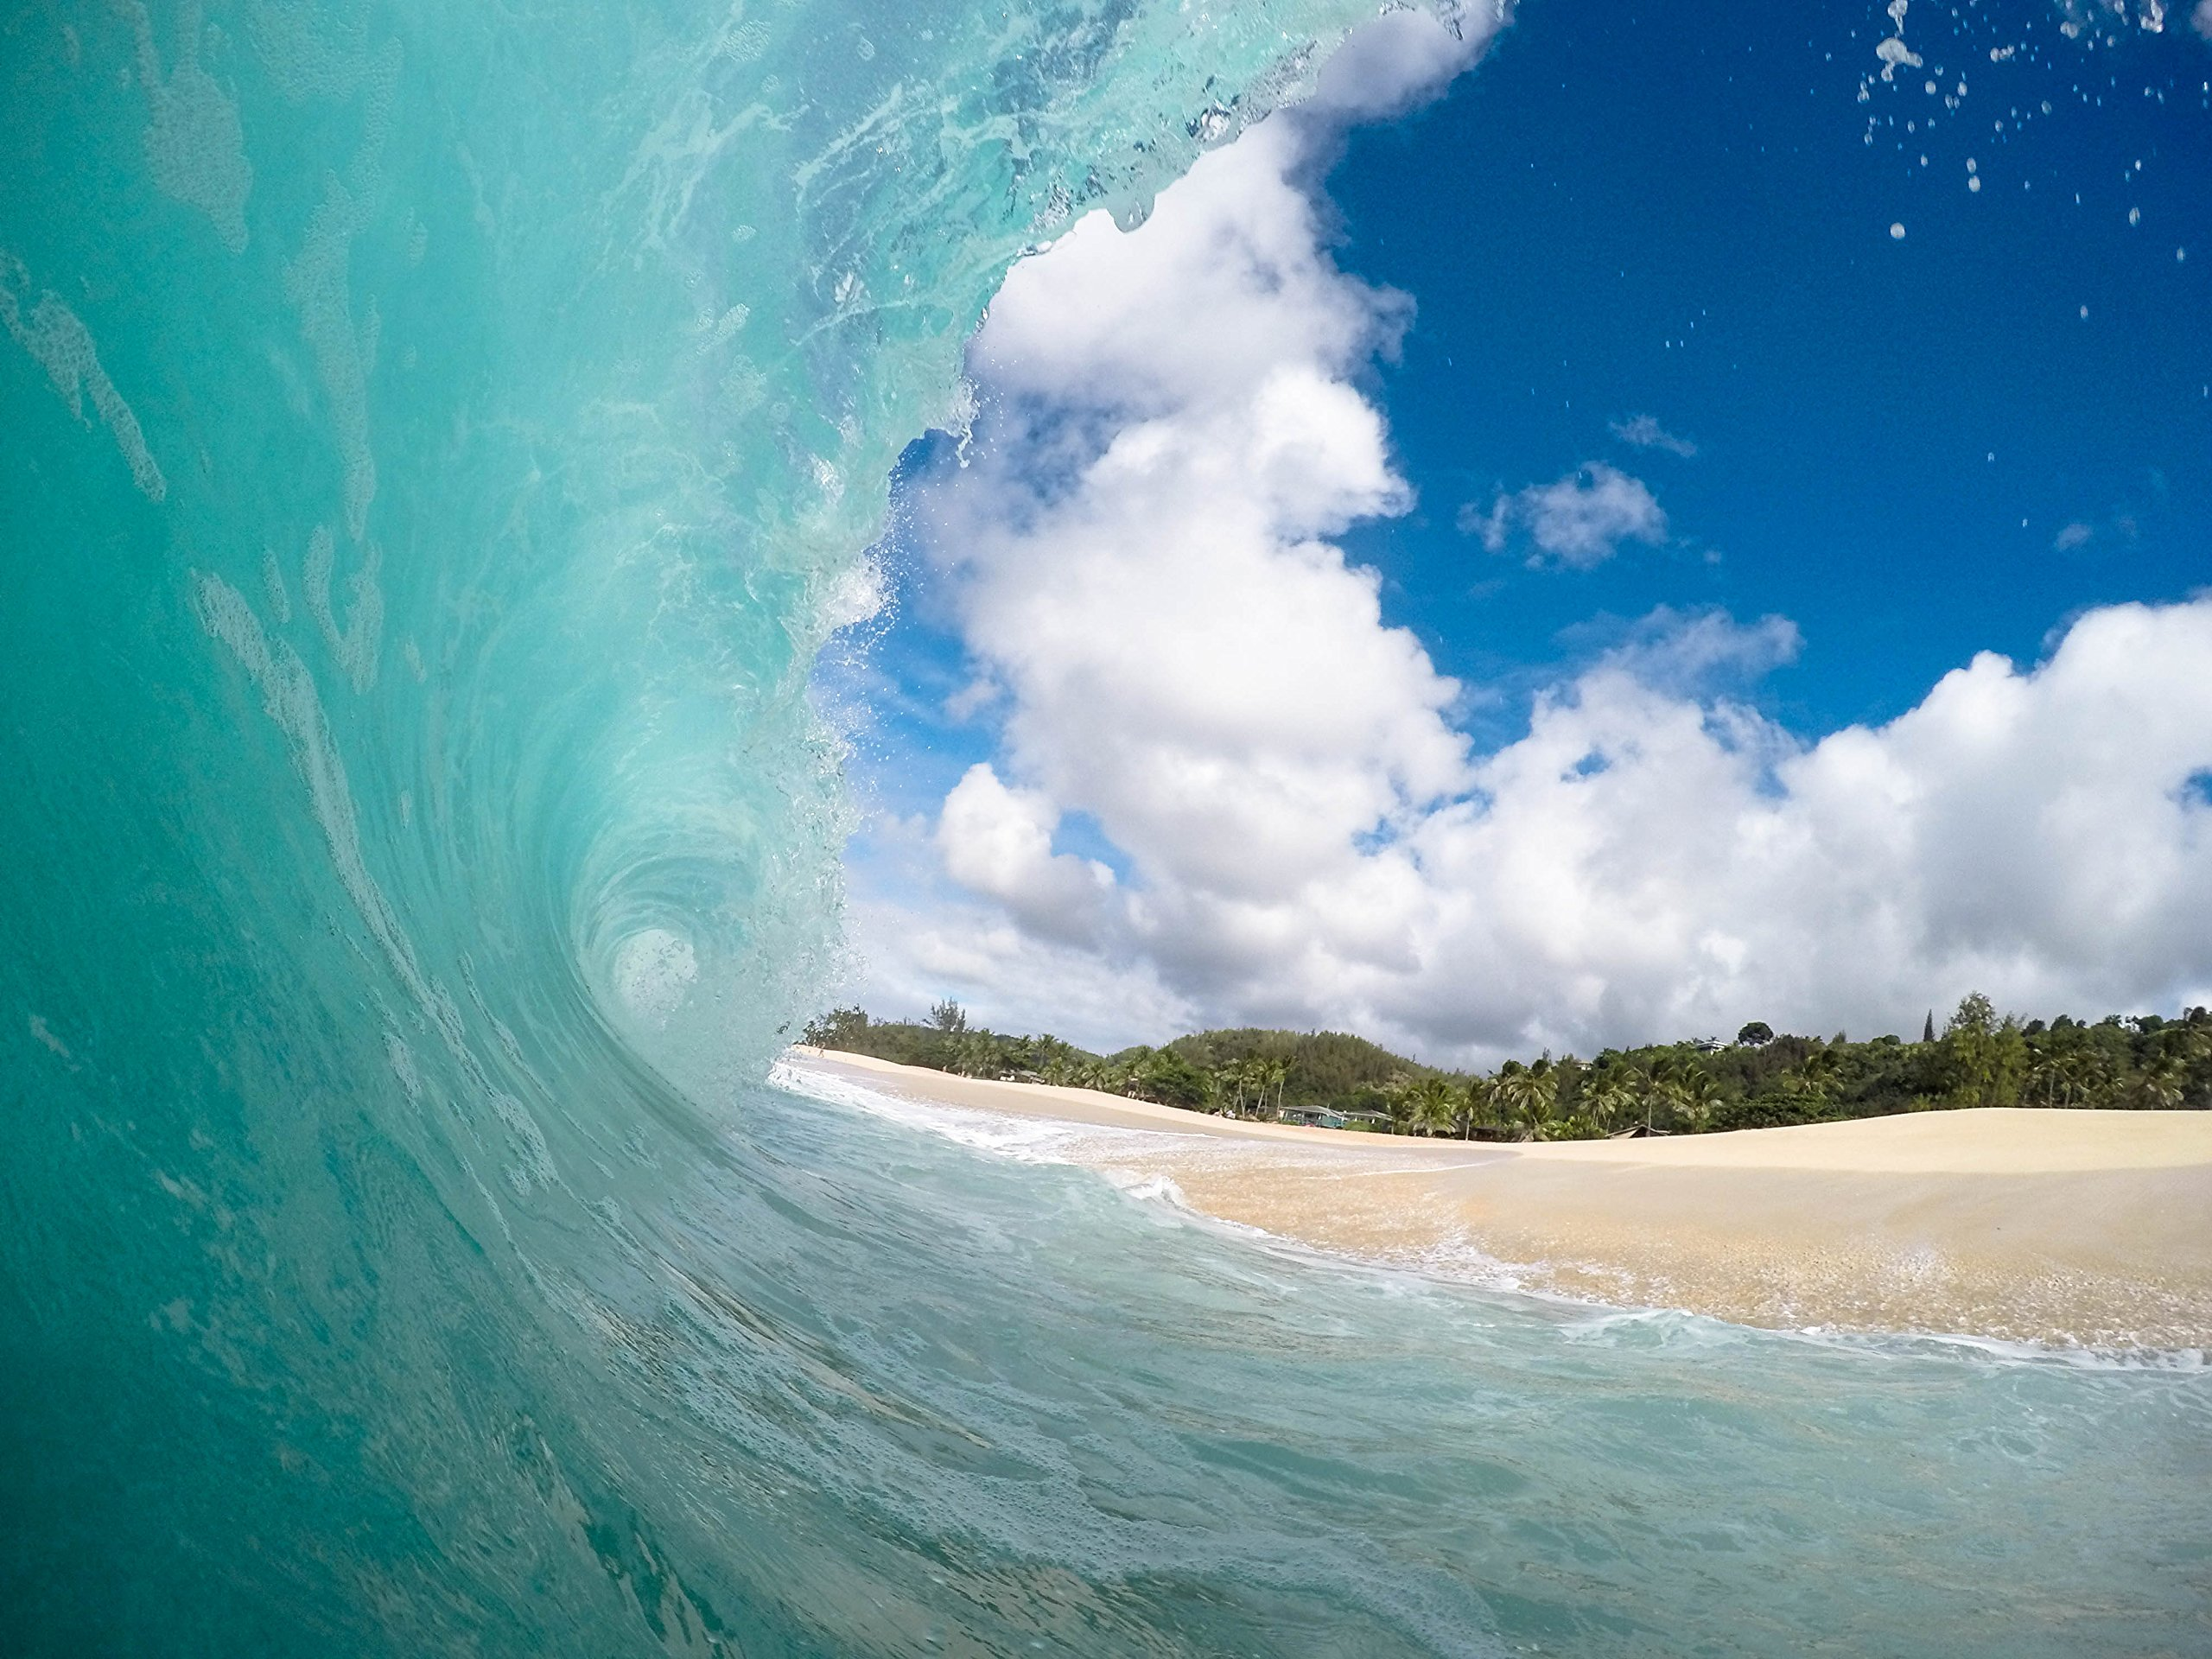 Ocean Wave And Beach by